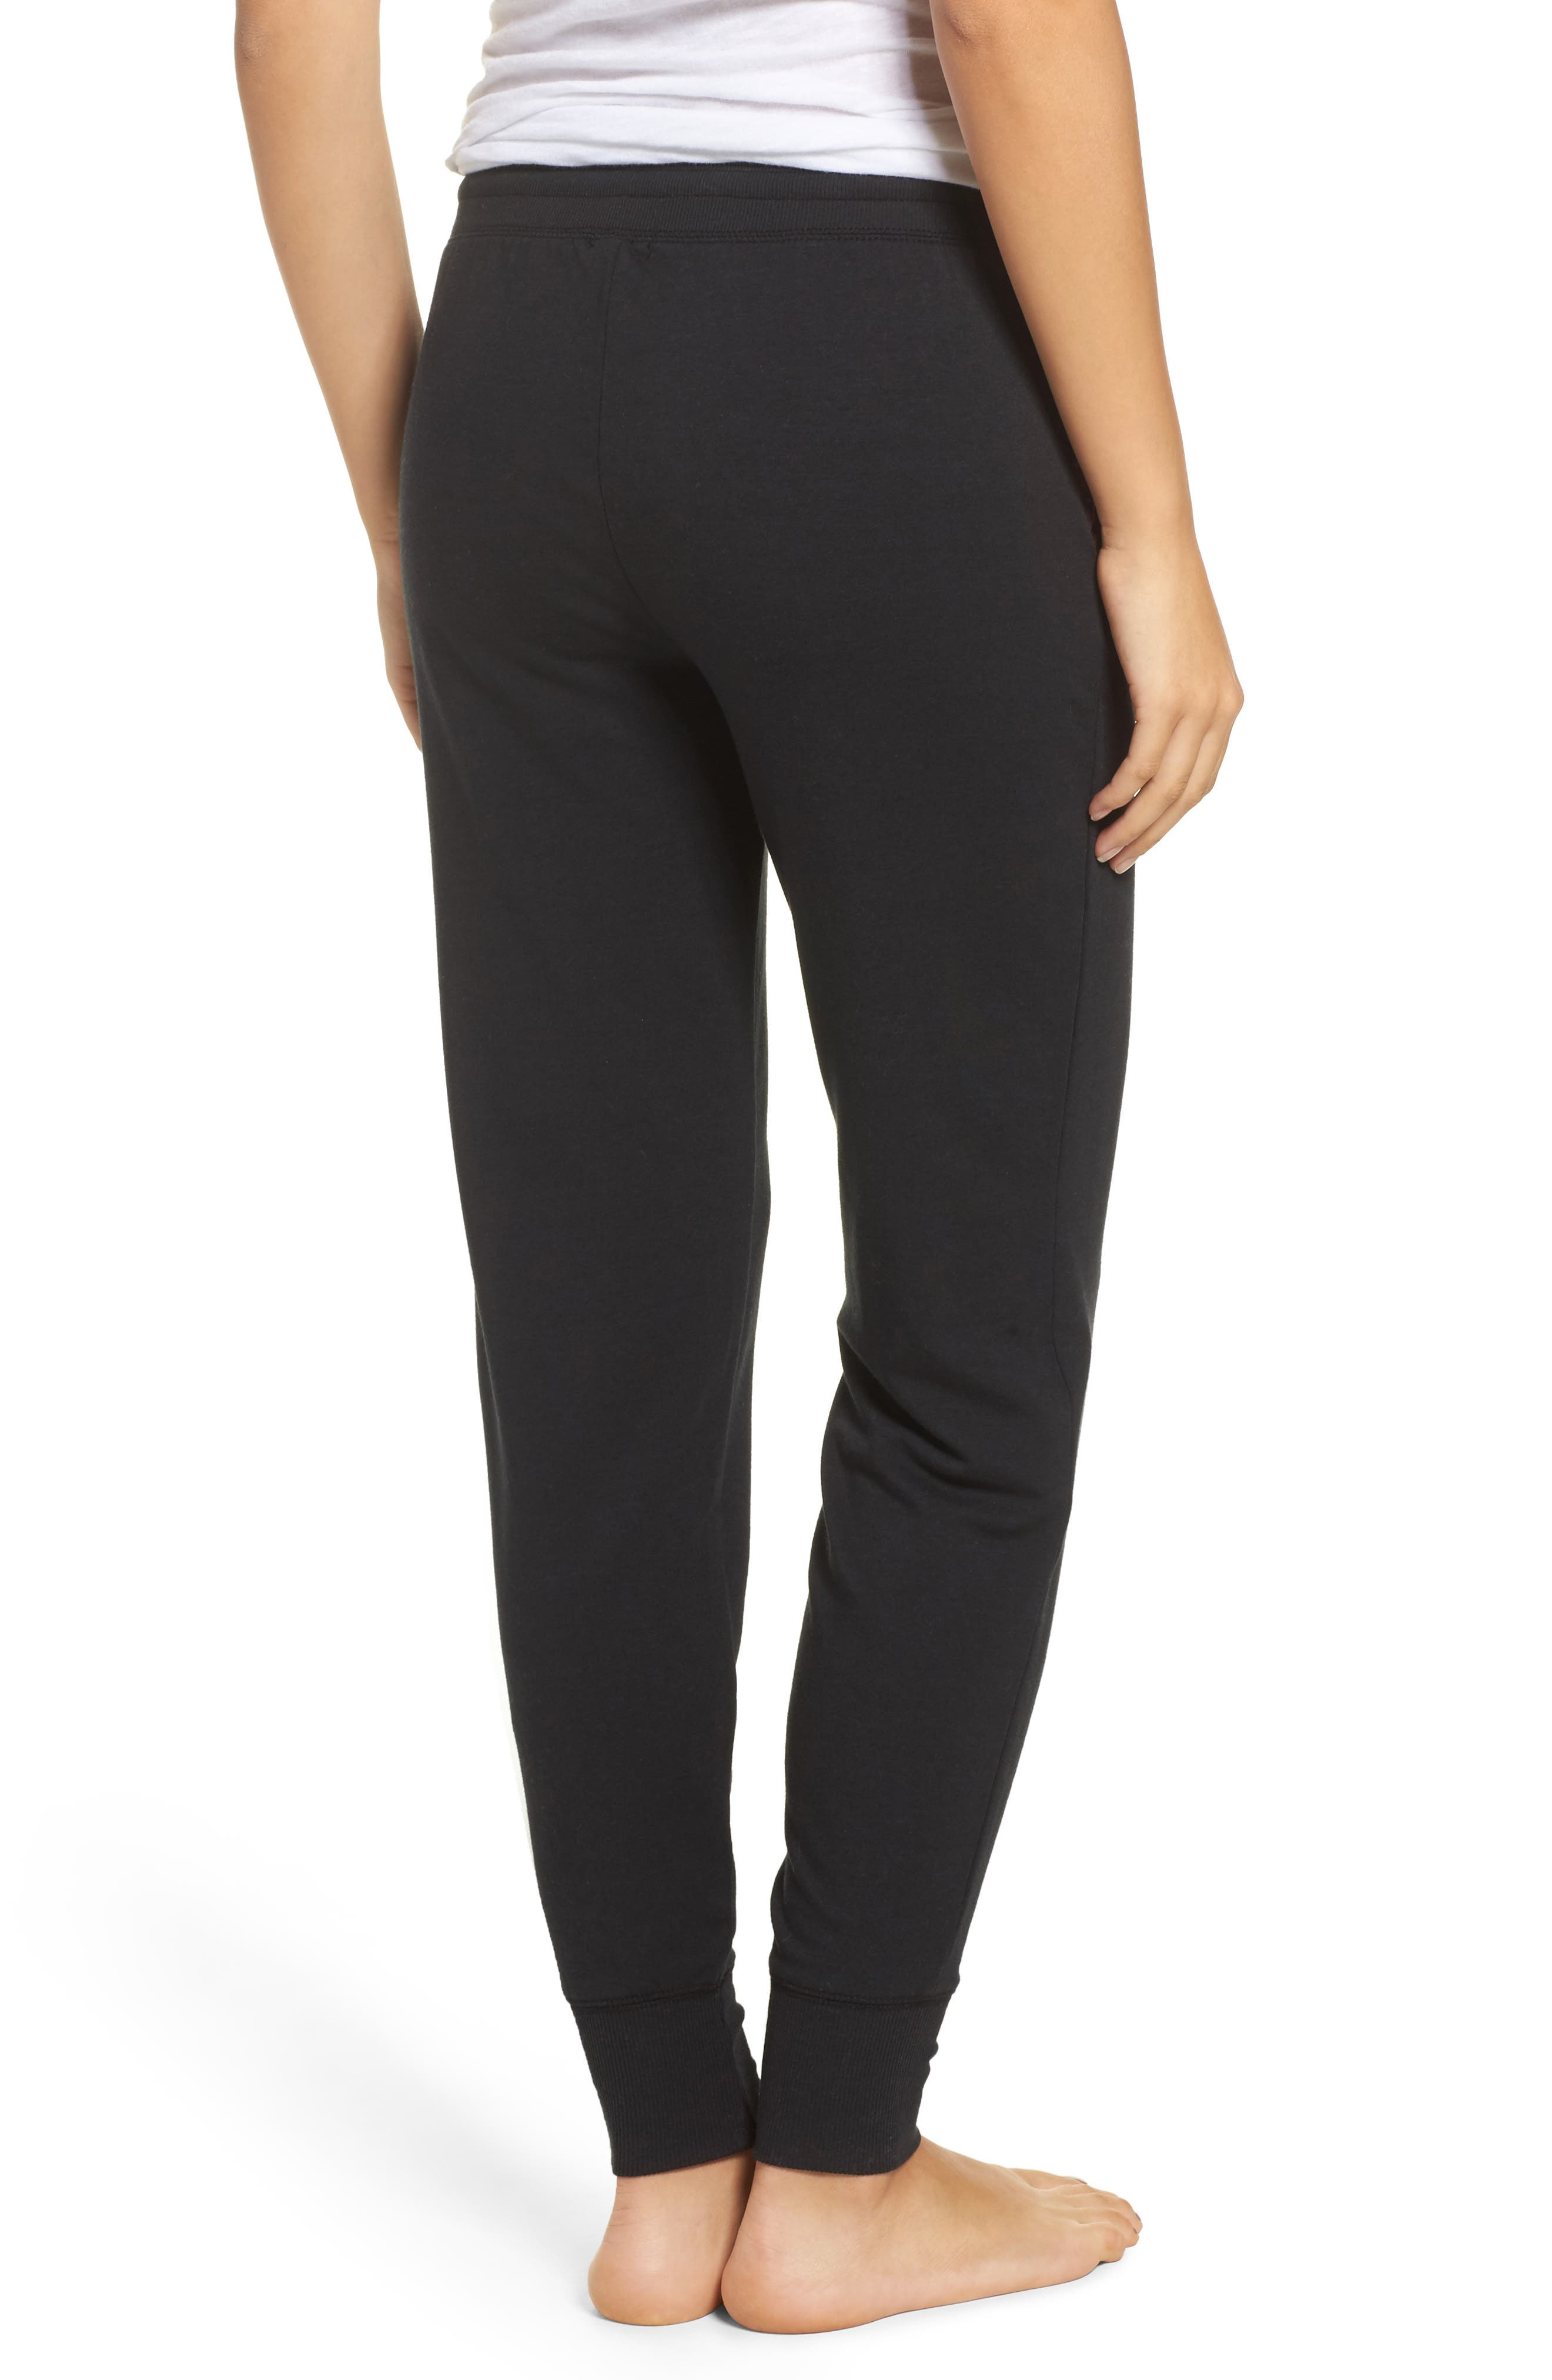 Lounge Jogger Pants,                             Alternate thumbnail 2, color,                             001